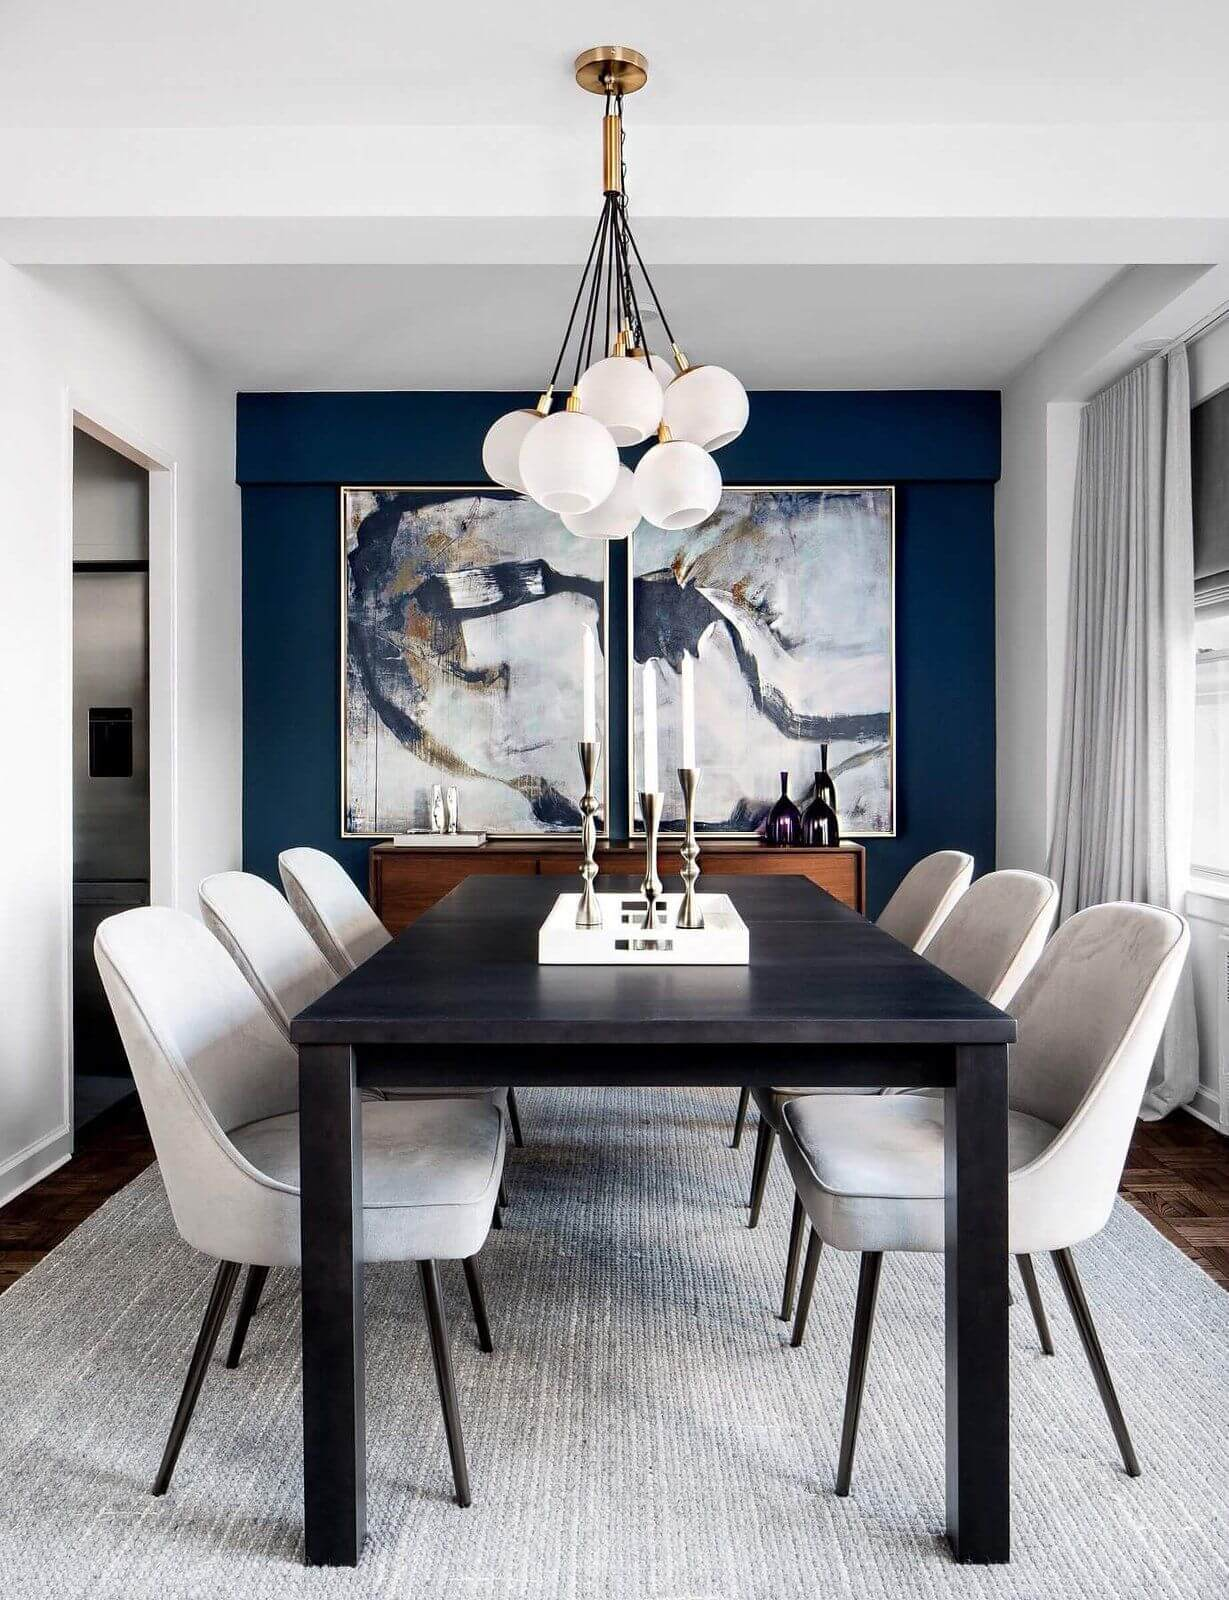 25 Inspirations of Designer Chairs for Dining Room (1)